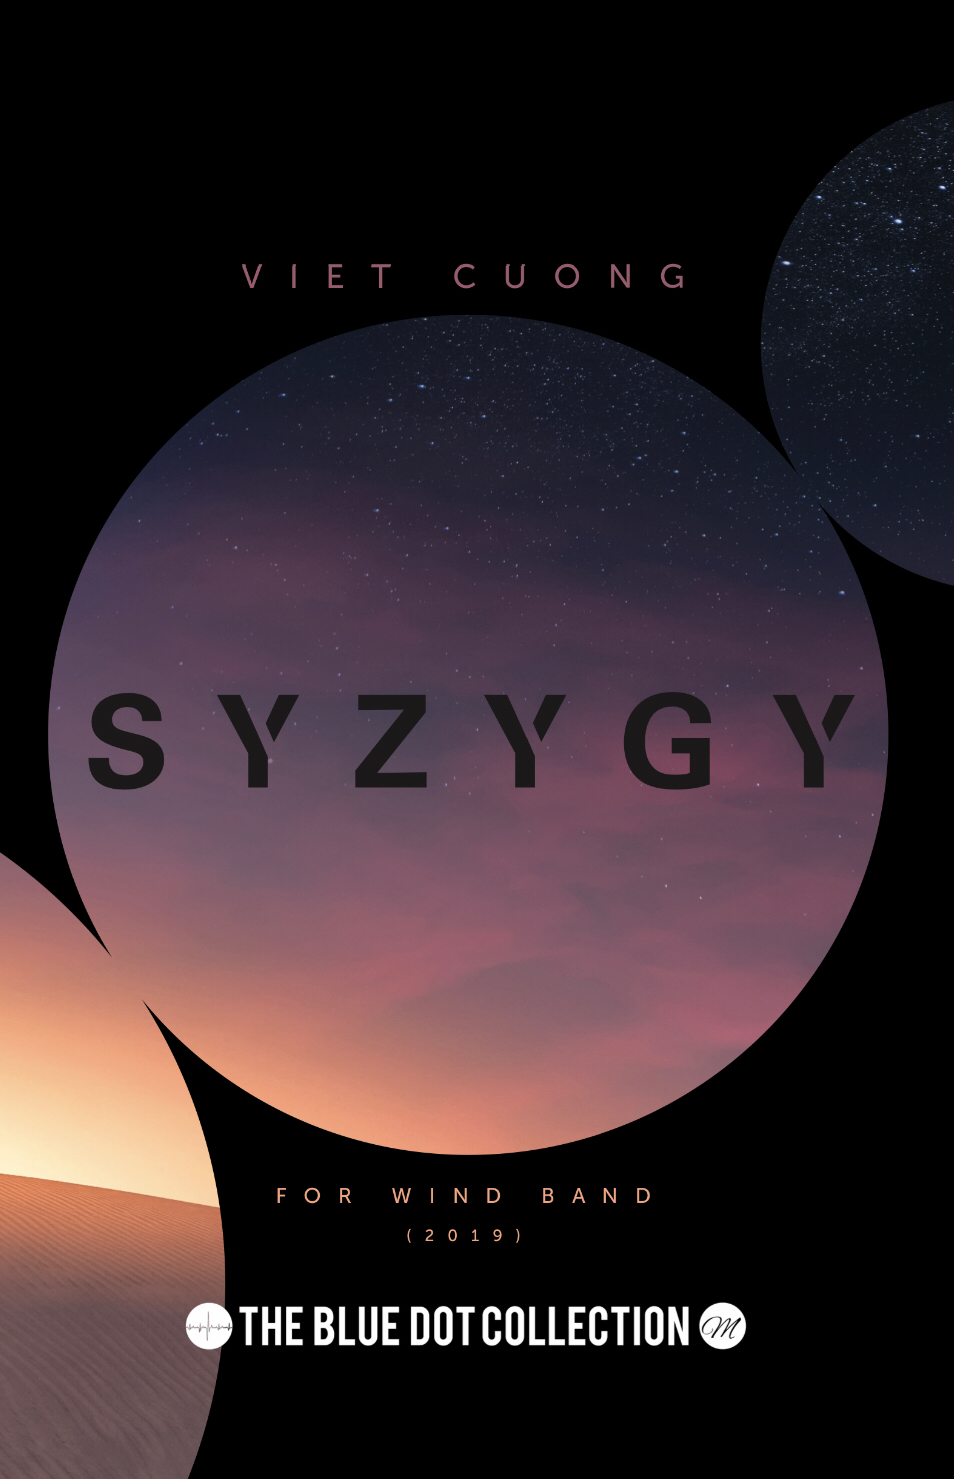 Syzygy by Viet Cuong